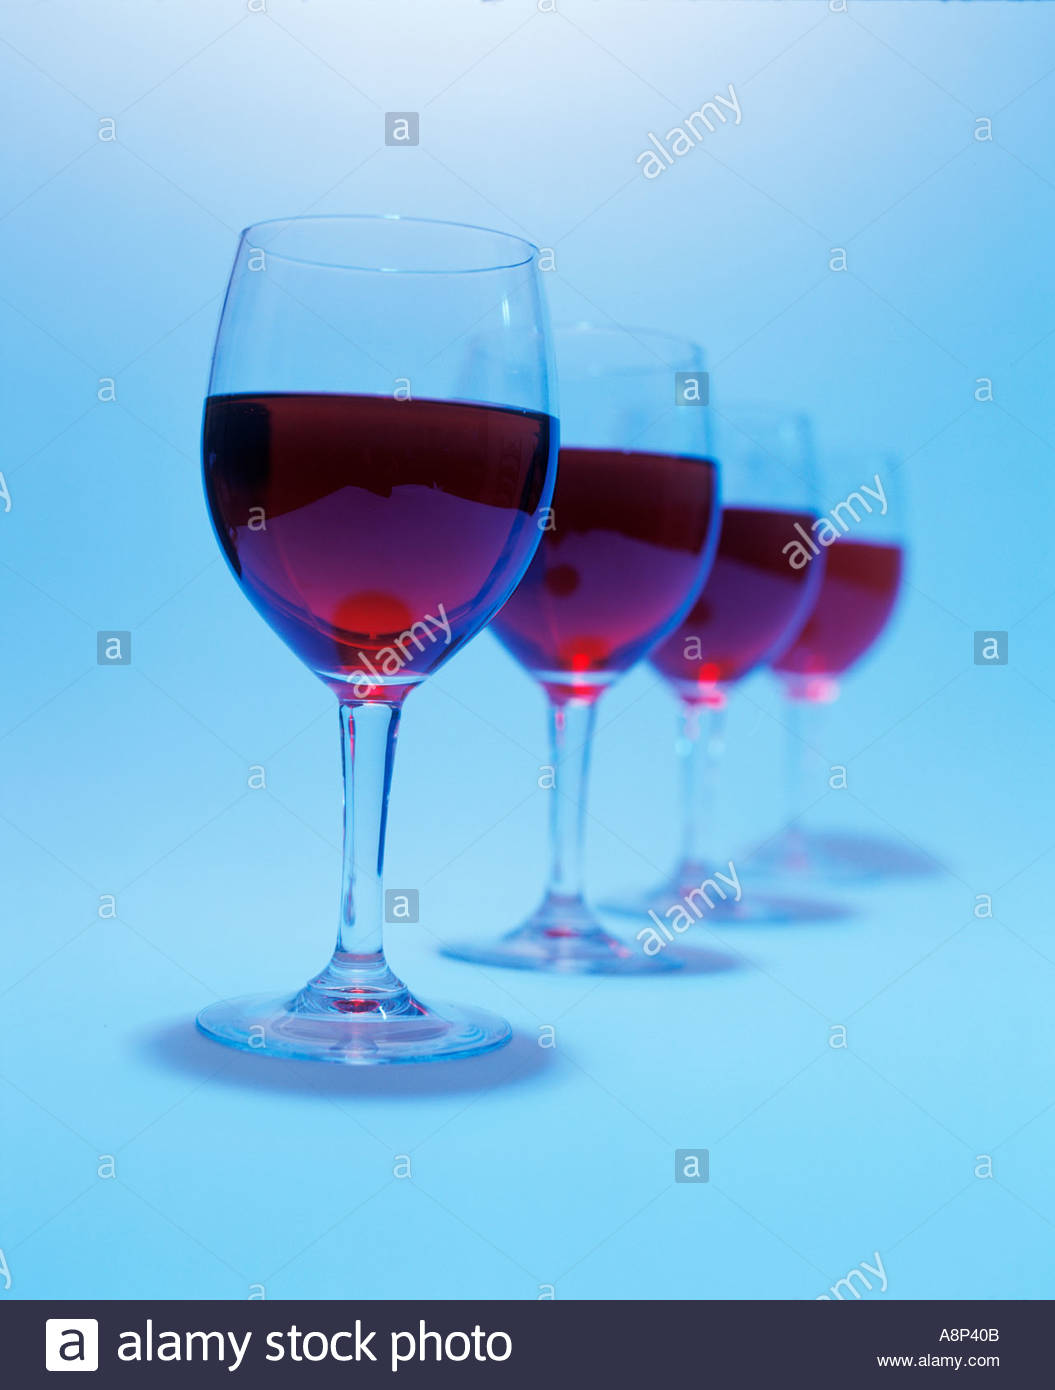 four shape in photographic studio situation white background and blue wine glasses substance - Stock Image